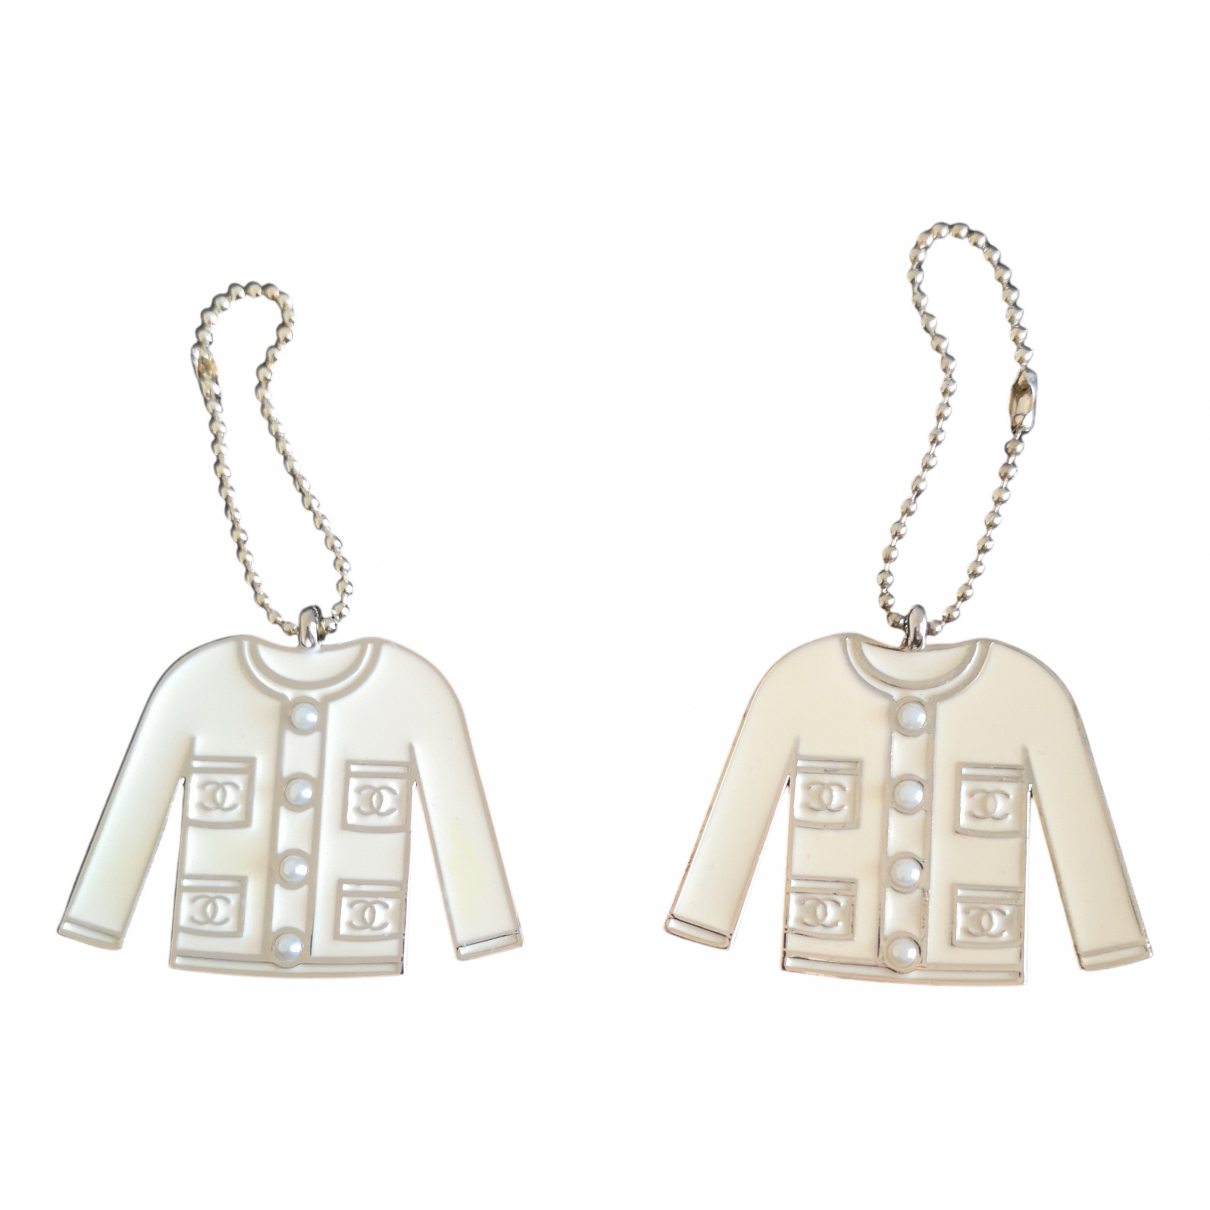 Chanel CHANEL White Metal Bag charms for Women N